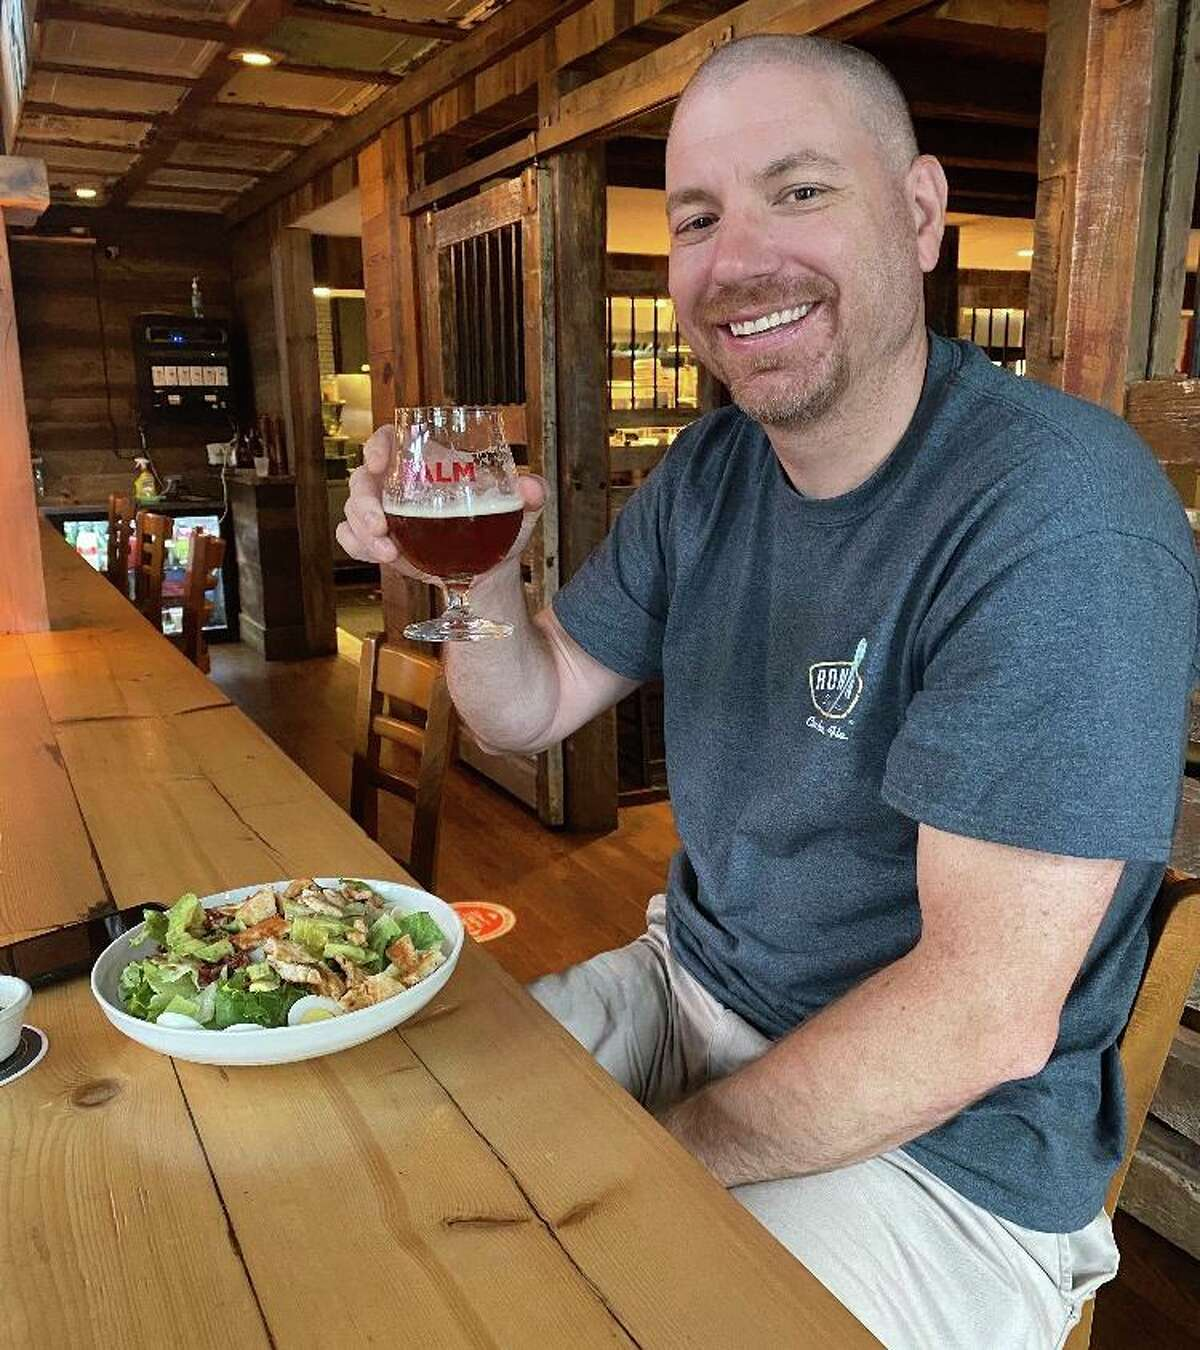 Todd Carpenter raises a glass while enjoying a meal at Red Rooster Pub in Ridgefield.